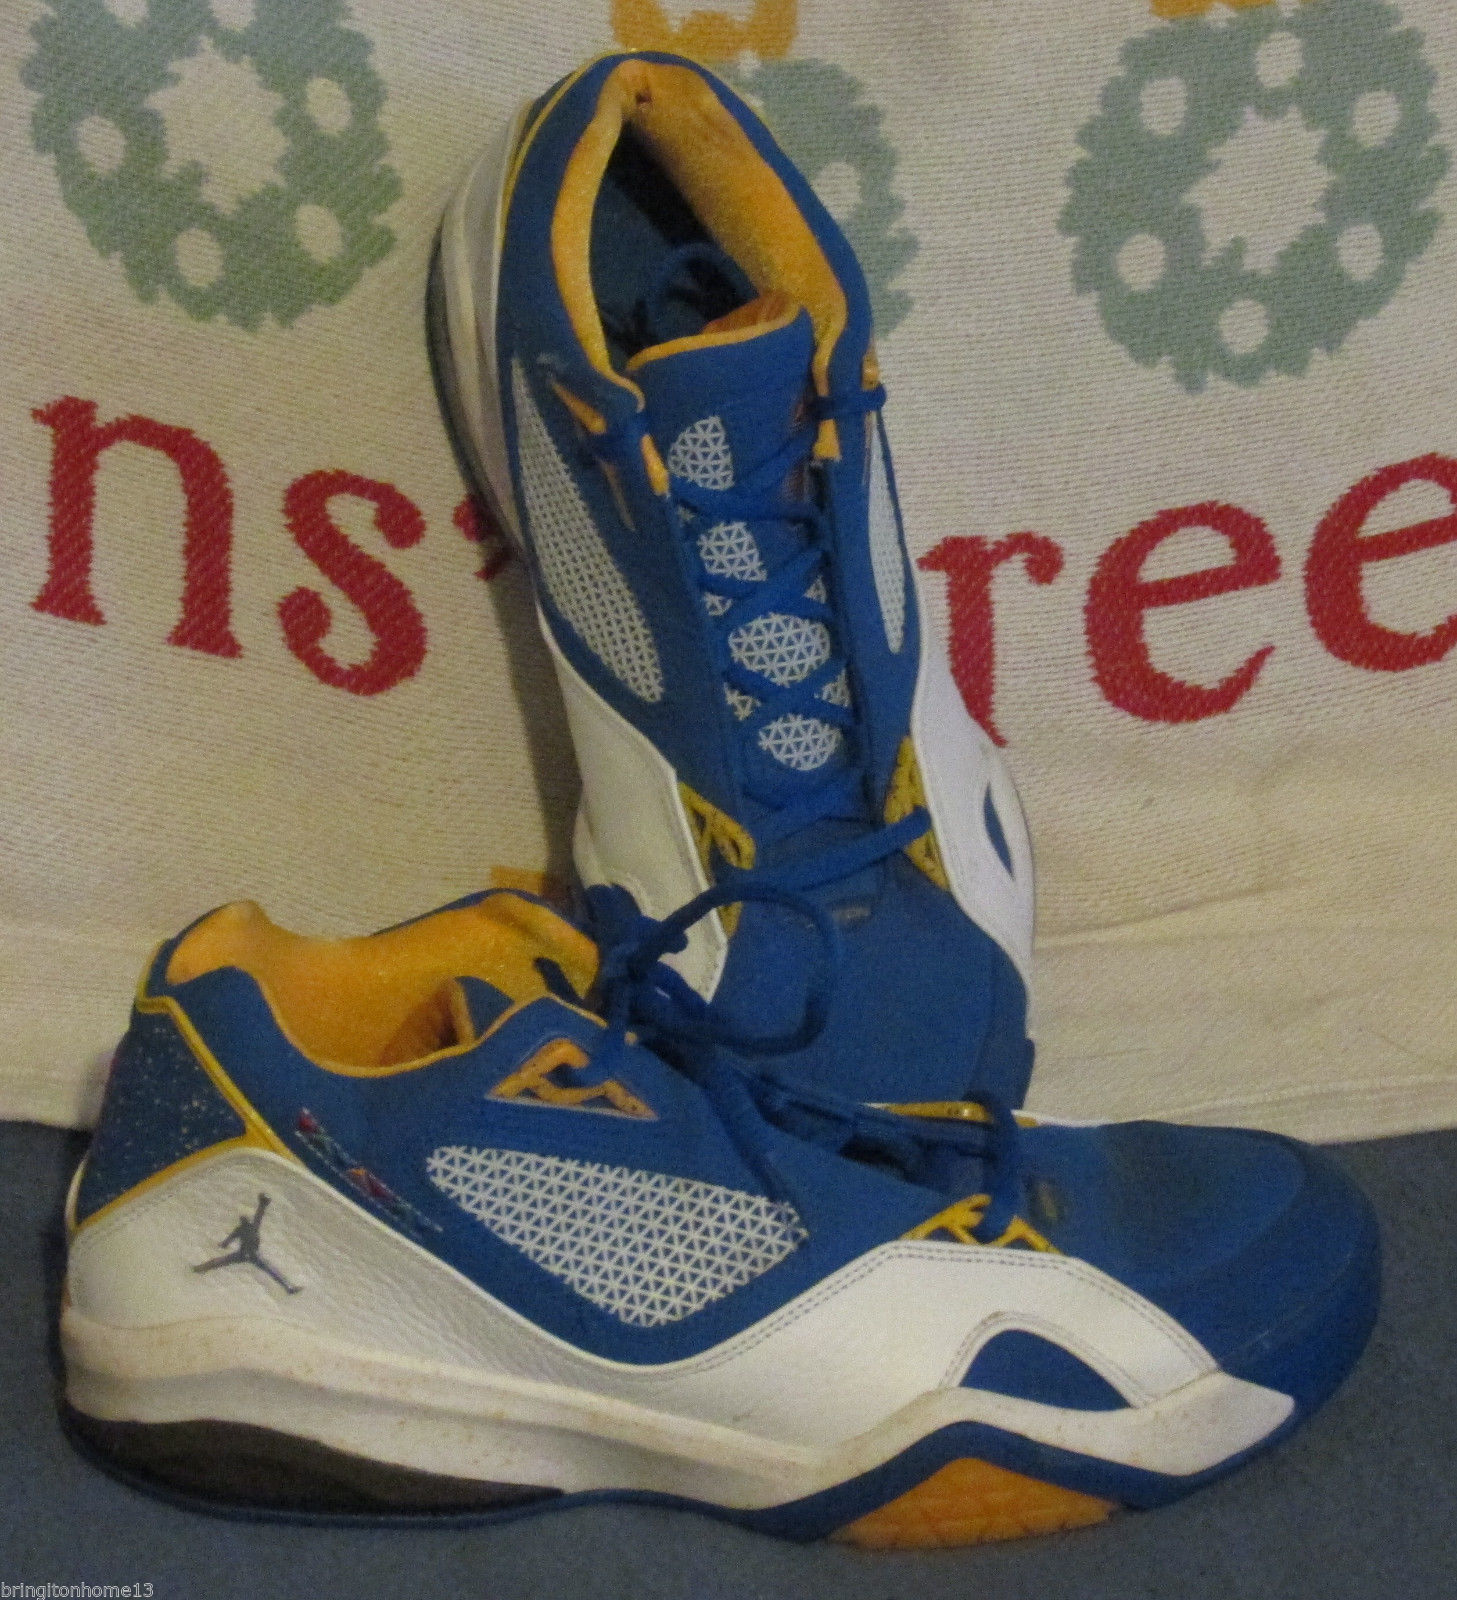 cheap for discount 1b5ac c49bb 2007 Nike Jordan Rb Extreme Shoes Size 10 and 50 similar items. S l1600